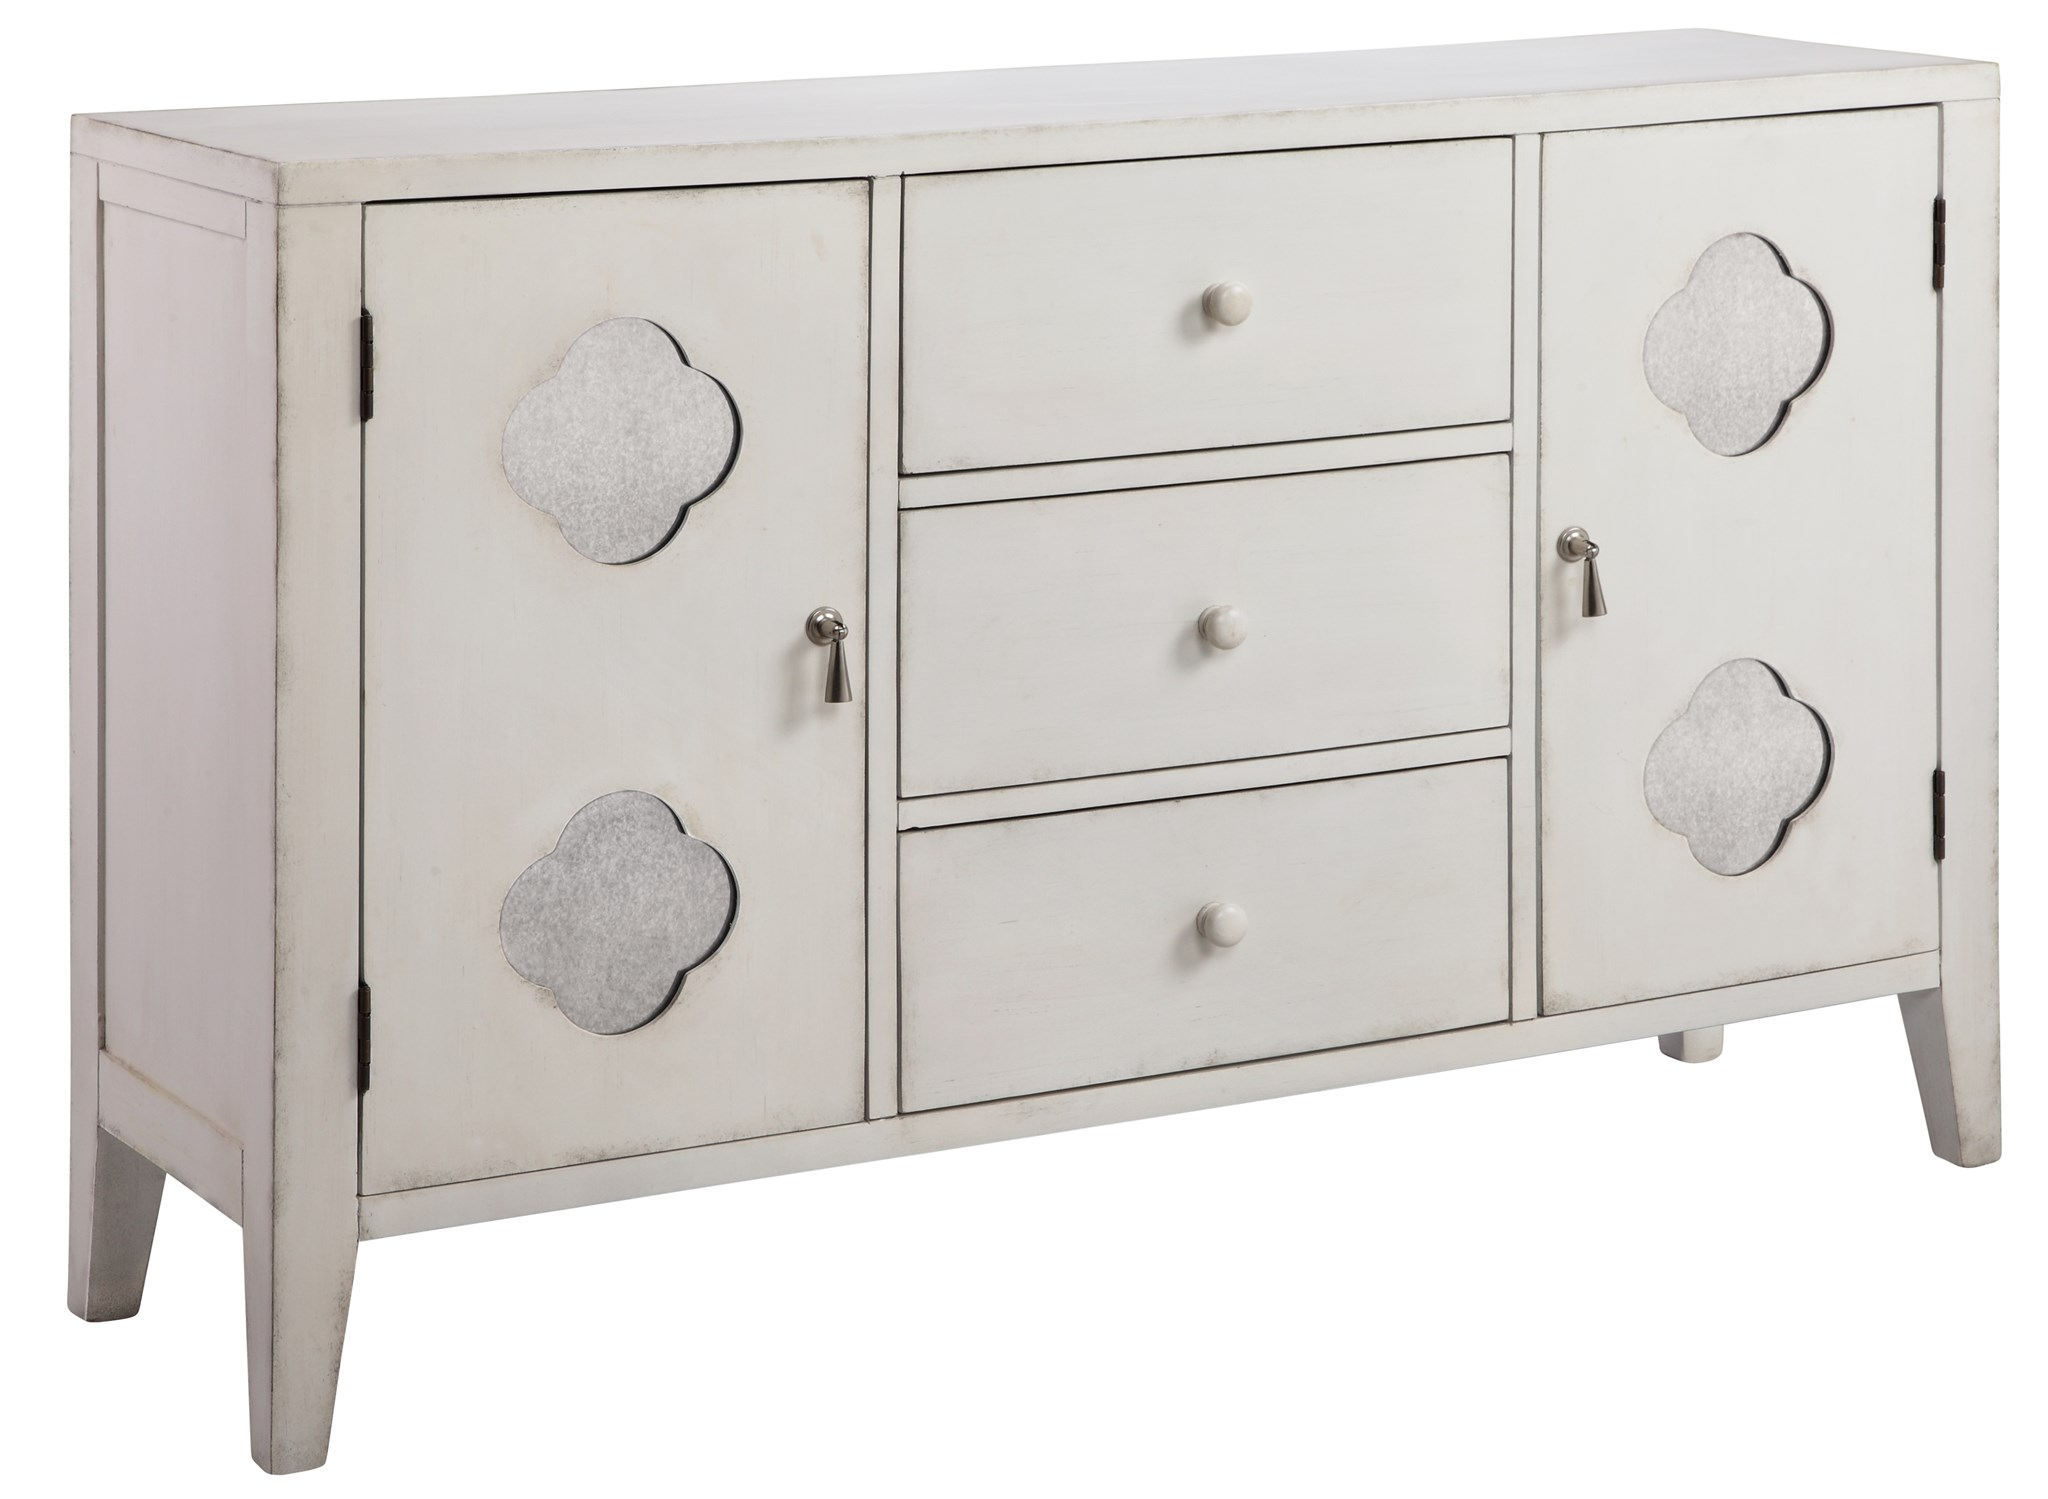 Superior Juliette 2 Door 3 Drawer Cabinet